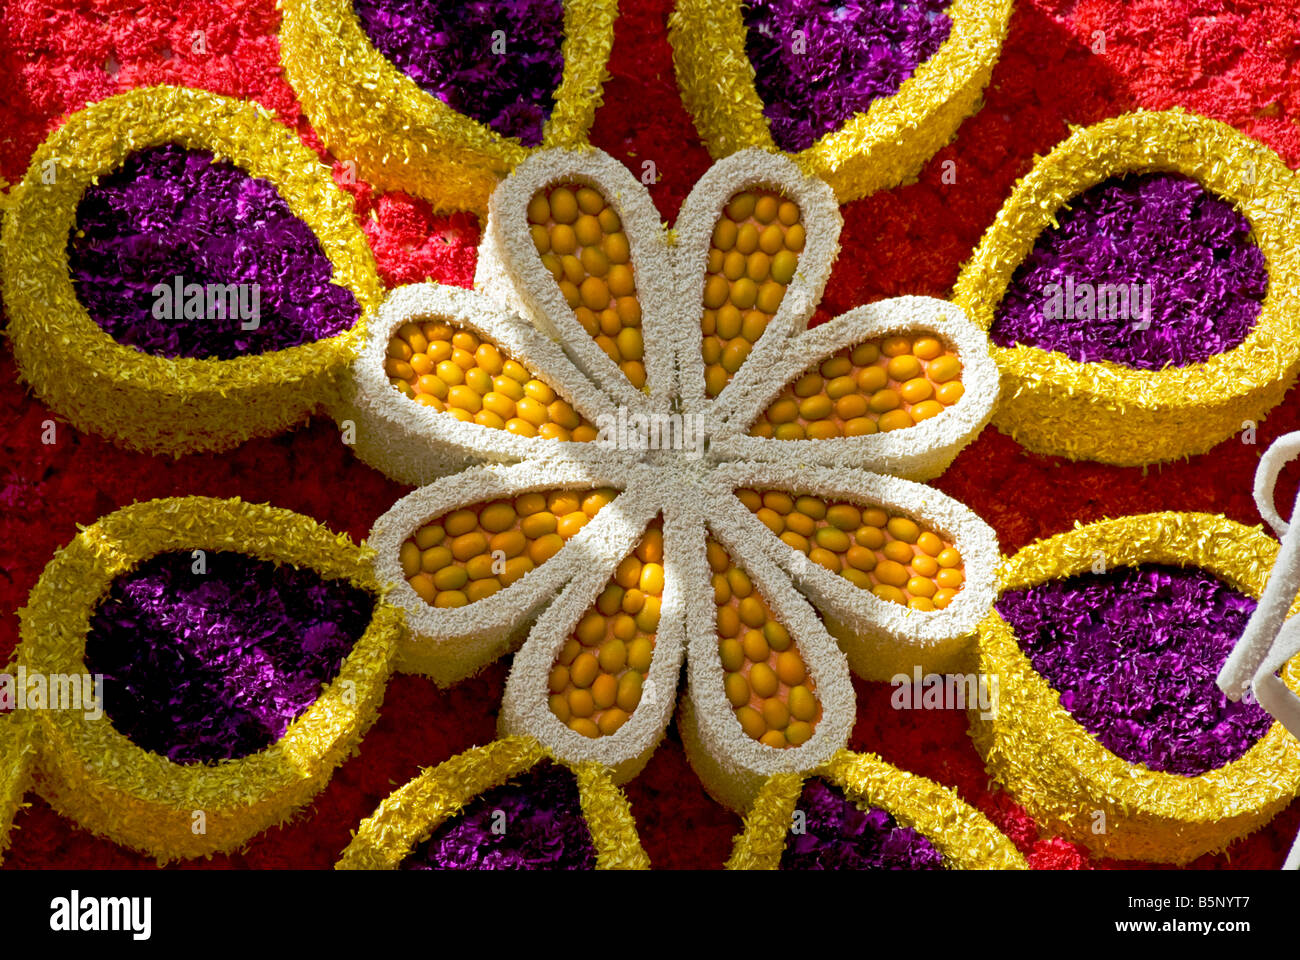 No artificial flowers stock photos no artificial flowers stock pasadena ca los angeles california tournament of roses parade float natural flowers or greenery mightylinksfo